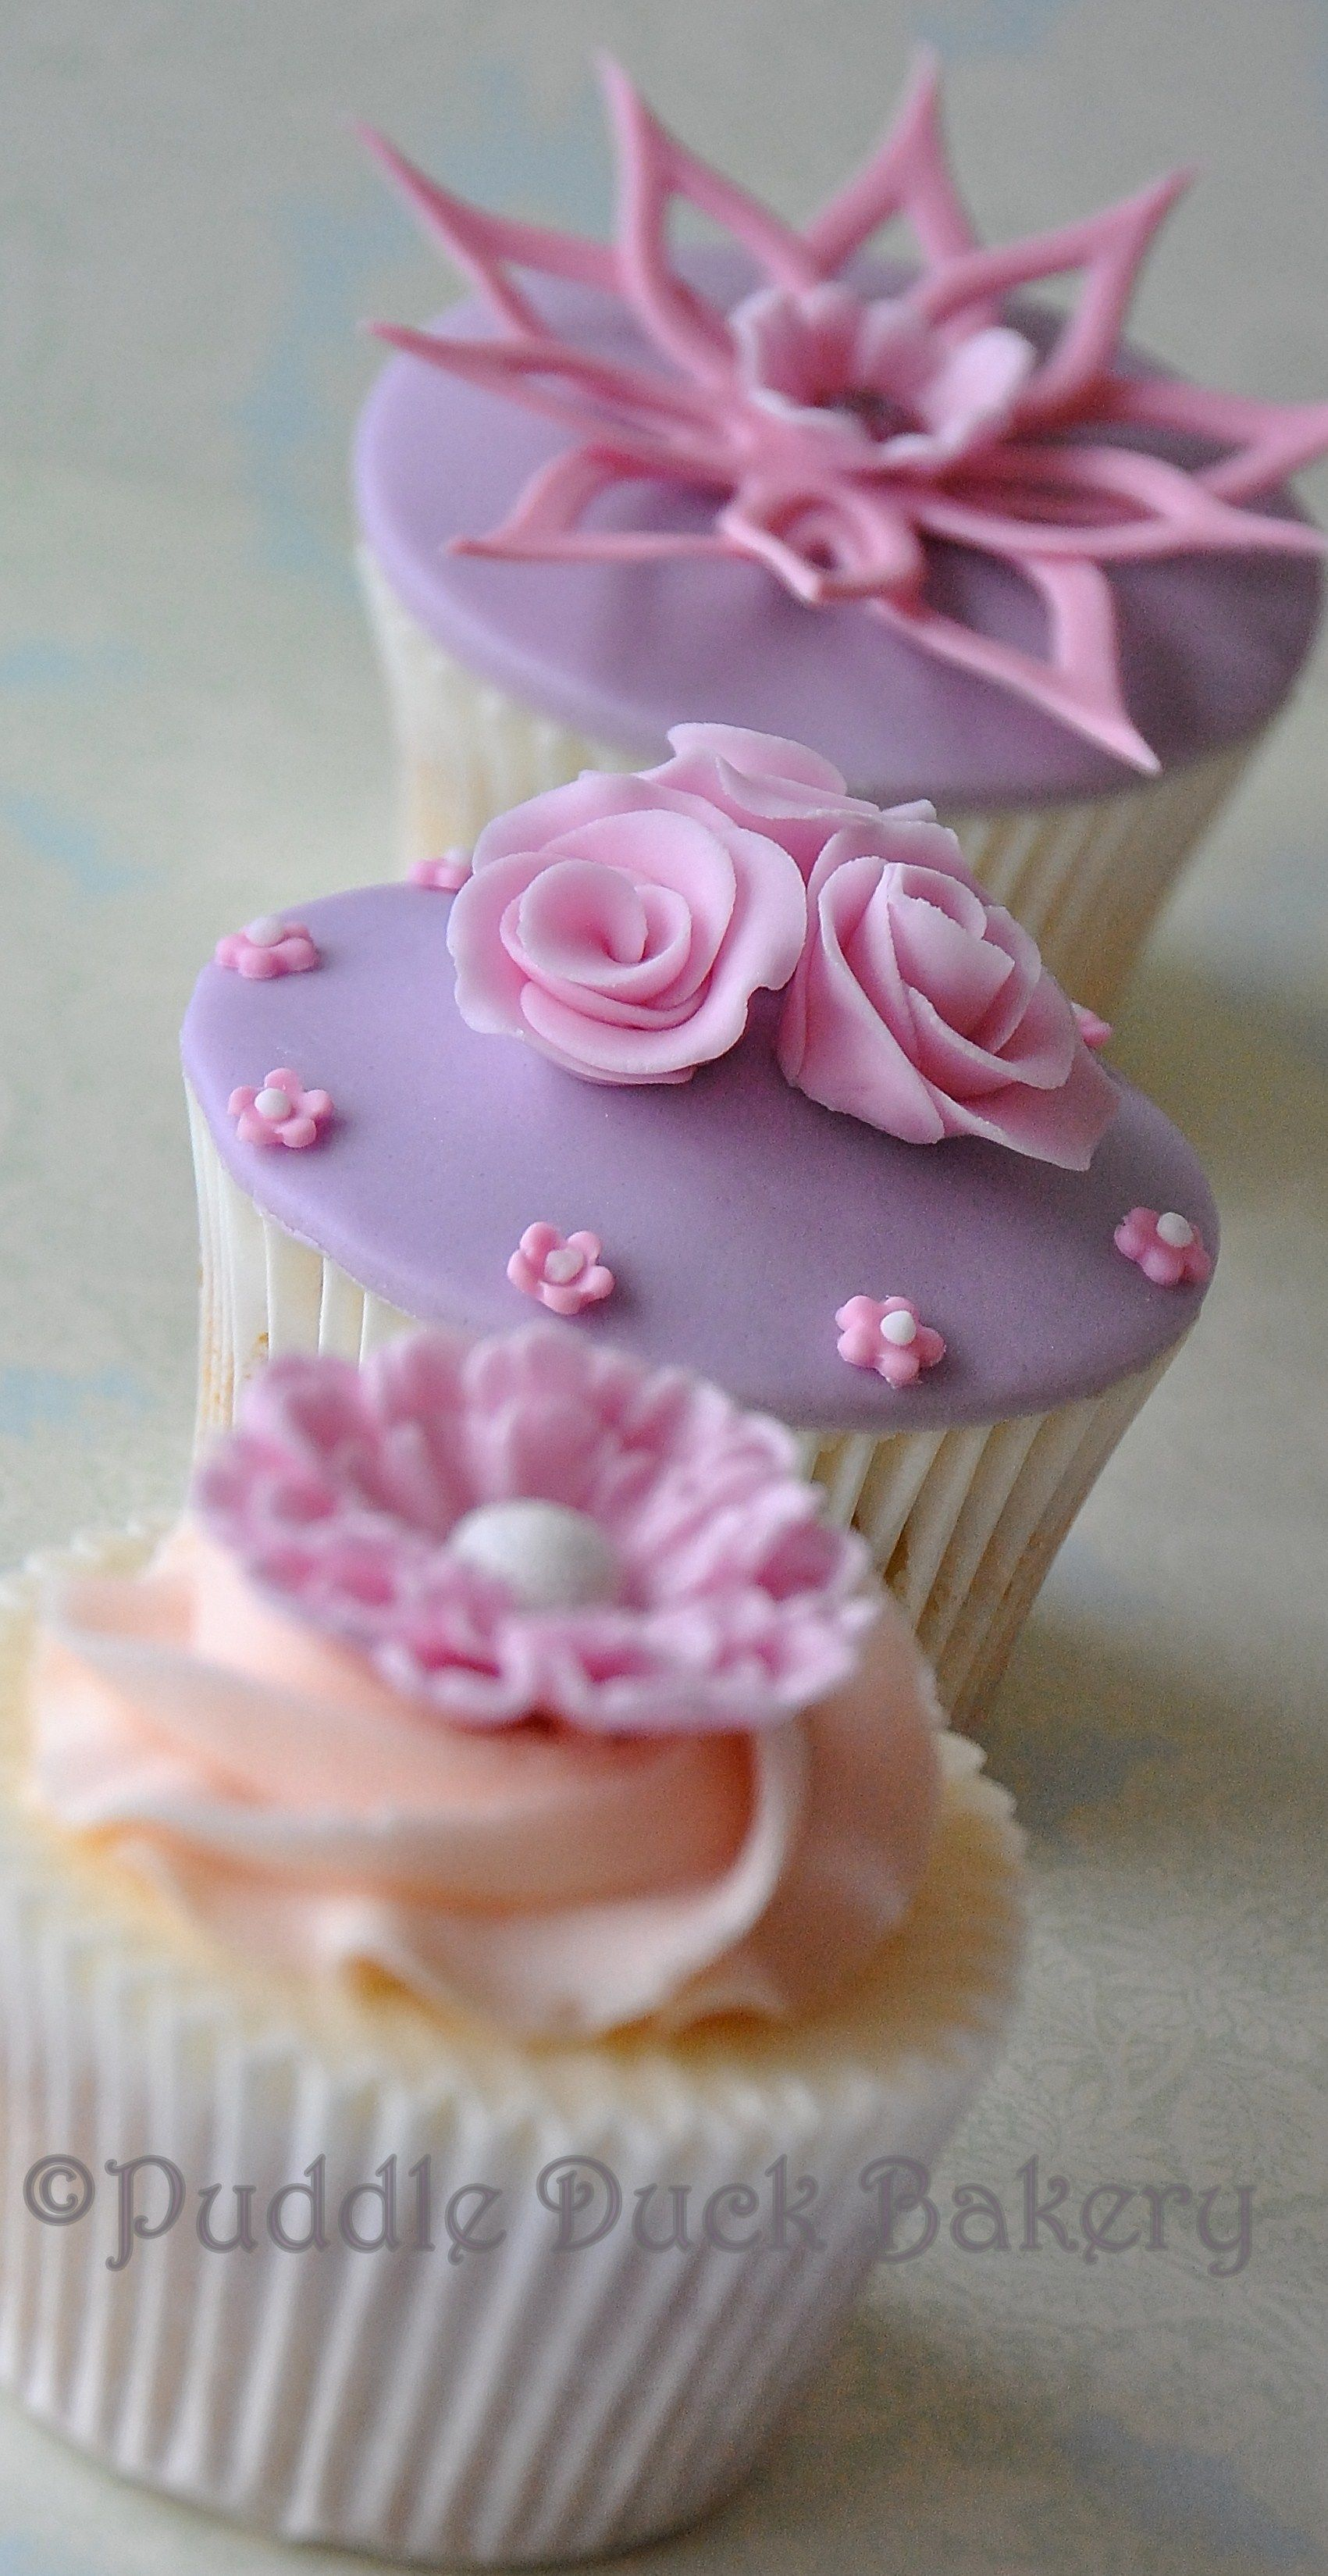 Beautiful flowers on a cupcake lovely cakes cupcakes sweets beautiful flowers on a cupcake izmirmasajfo